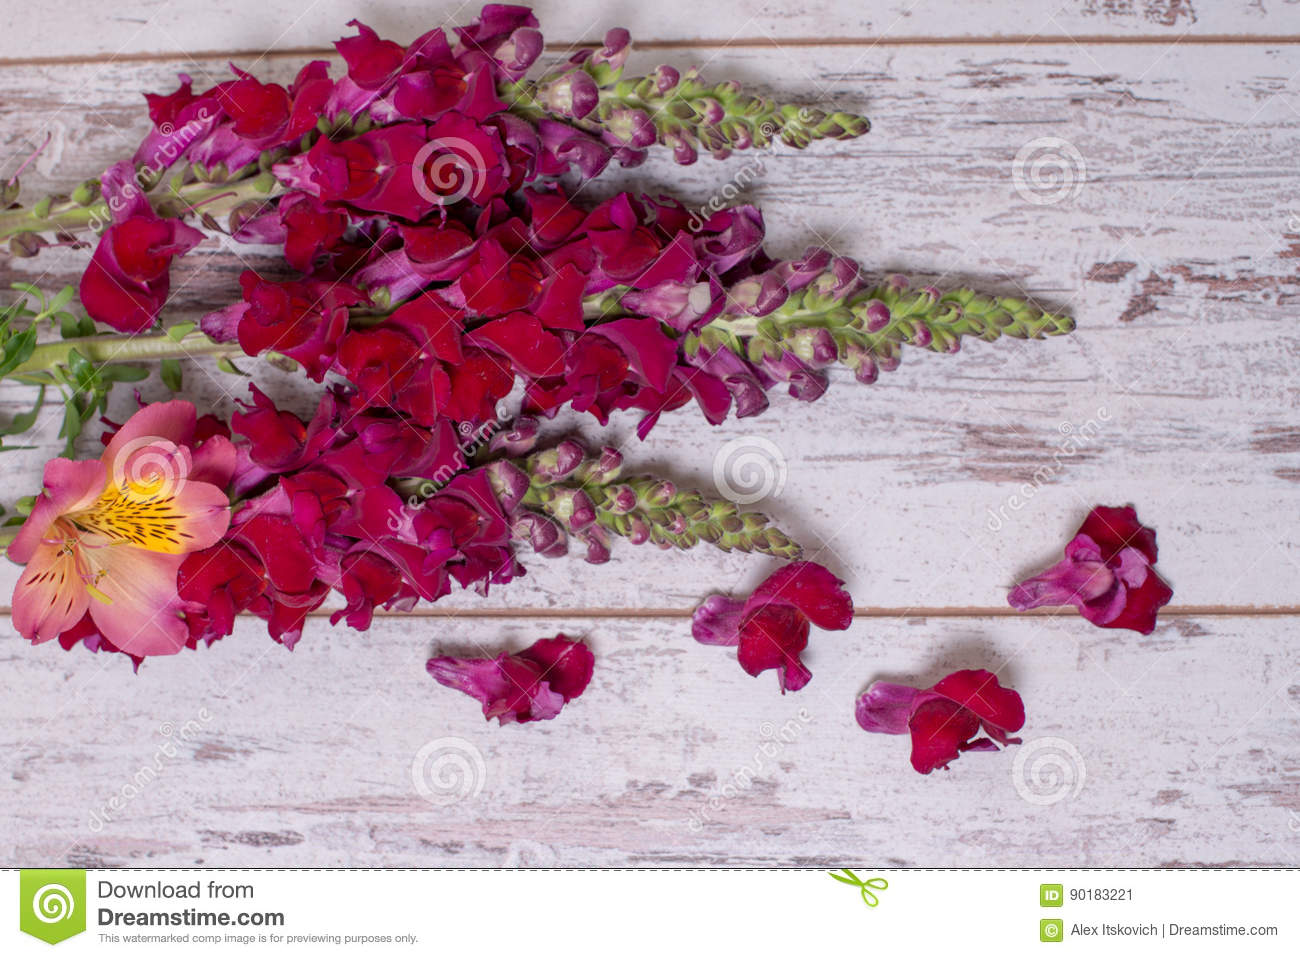 Snapdragon Flowers Bouquet Arranged On Wooden Background Stock Image